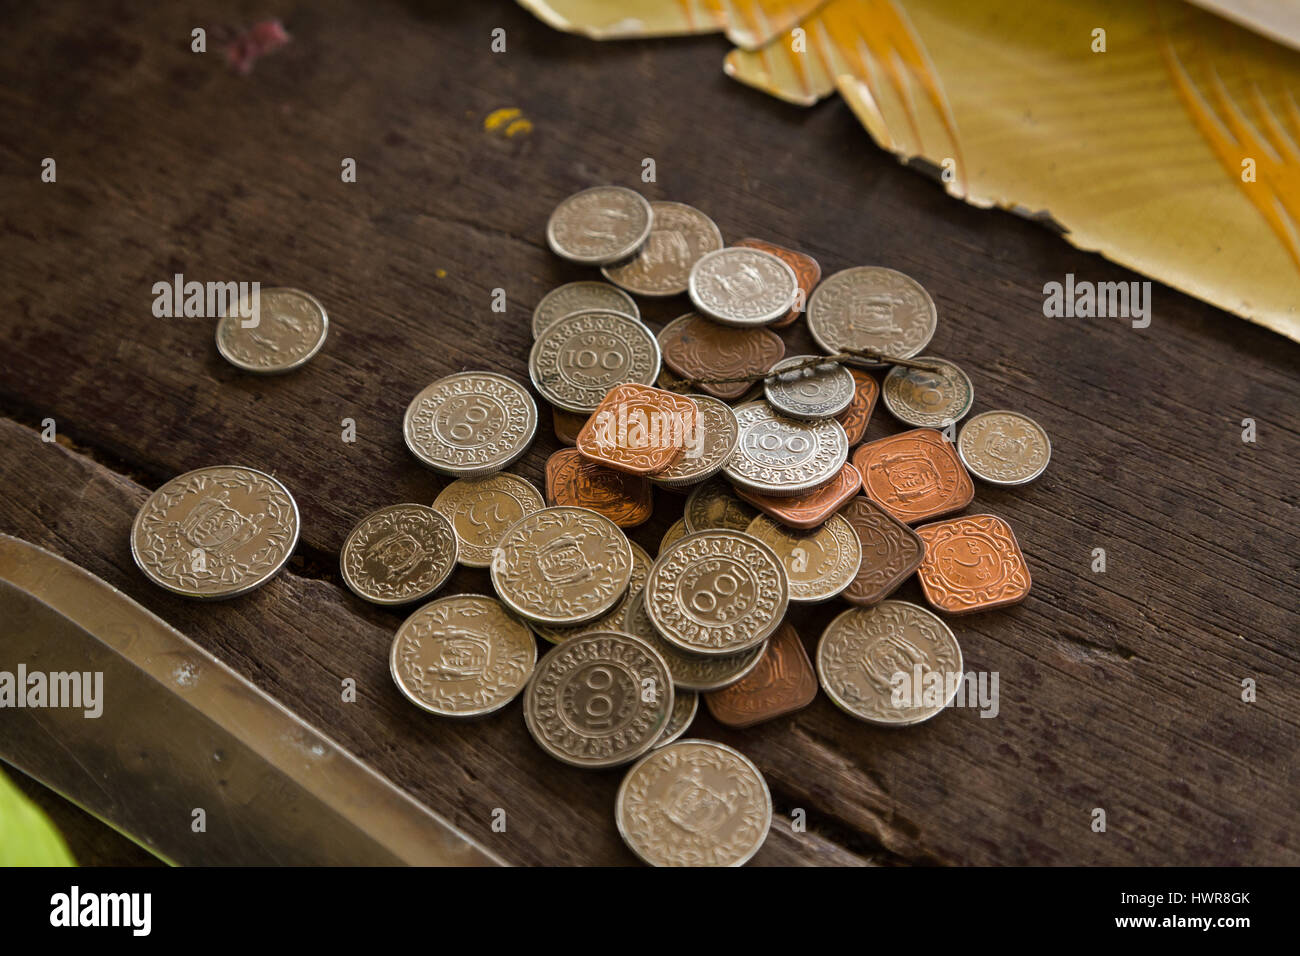 Surinamese coins on the counter top in a roadside market in Paramaribo, Suriname. - Stock Image